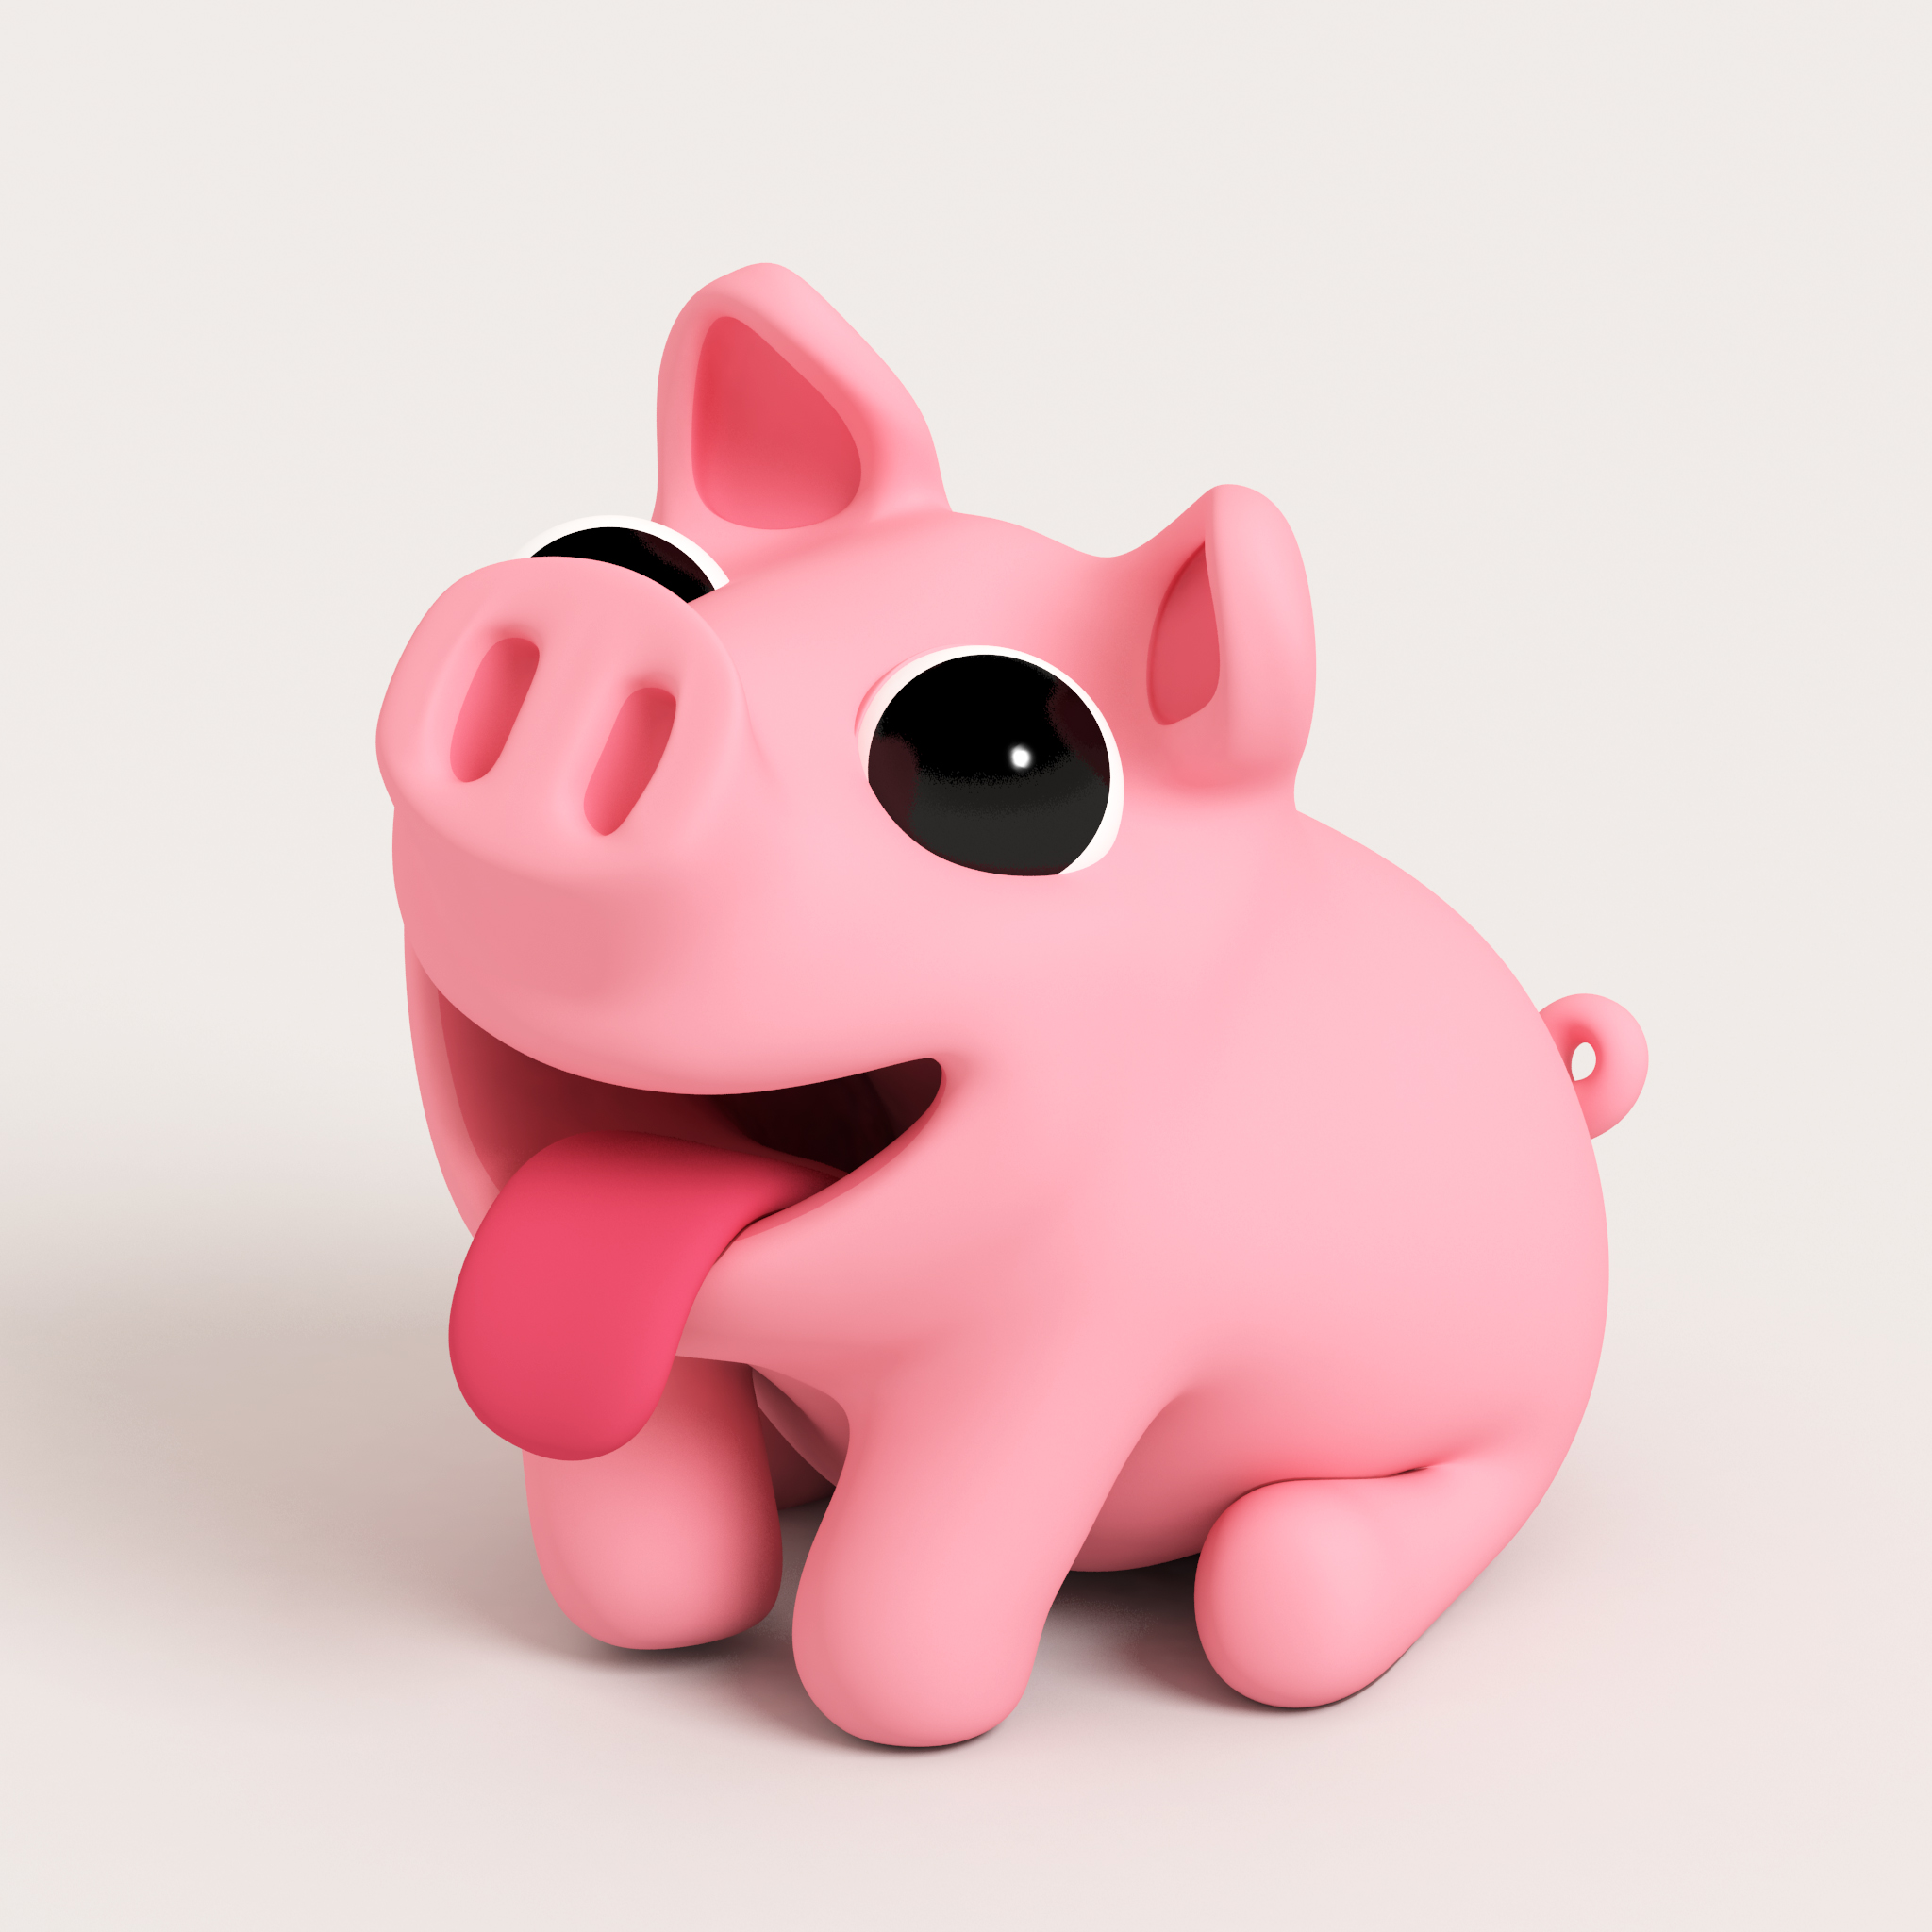 Cute Cartoon Hd Wallpapers Free Download Cute Pig Wallpaper Impremedia Net